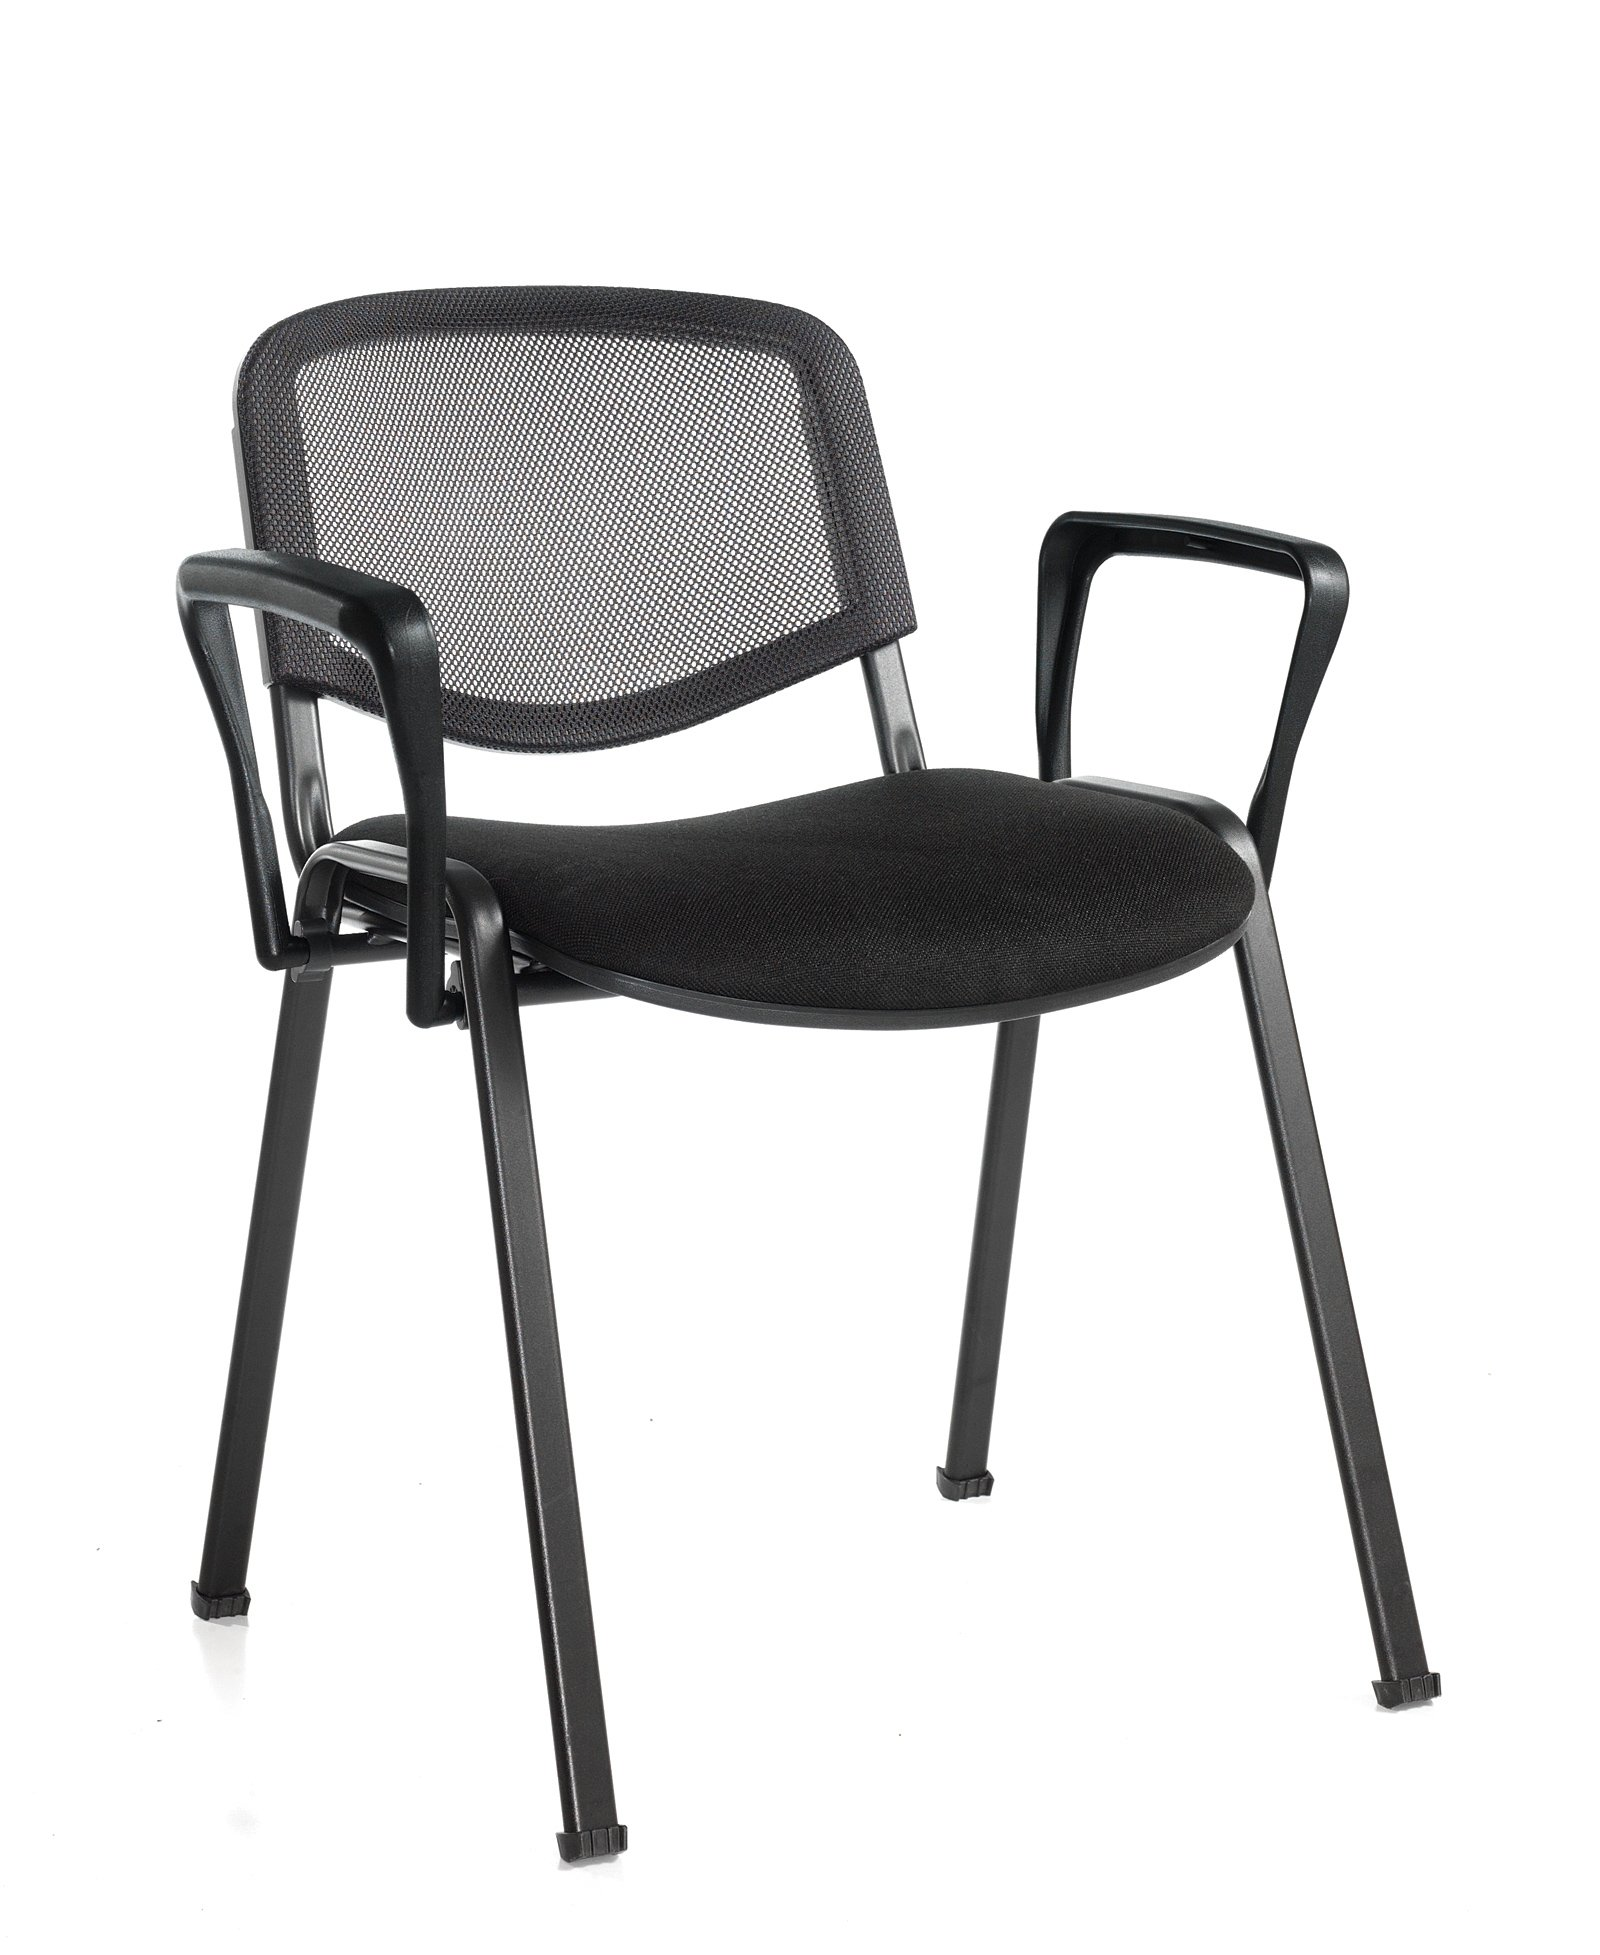 Taurus mesh stacking chair with arms price per box of